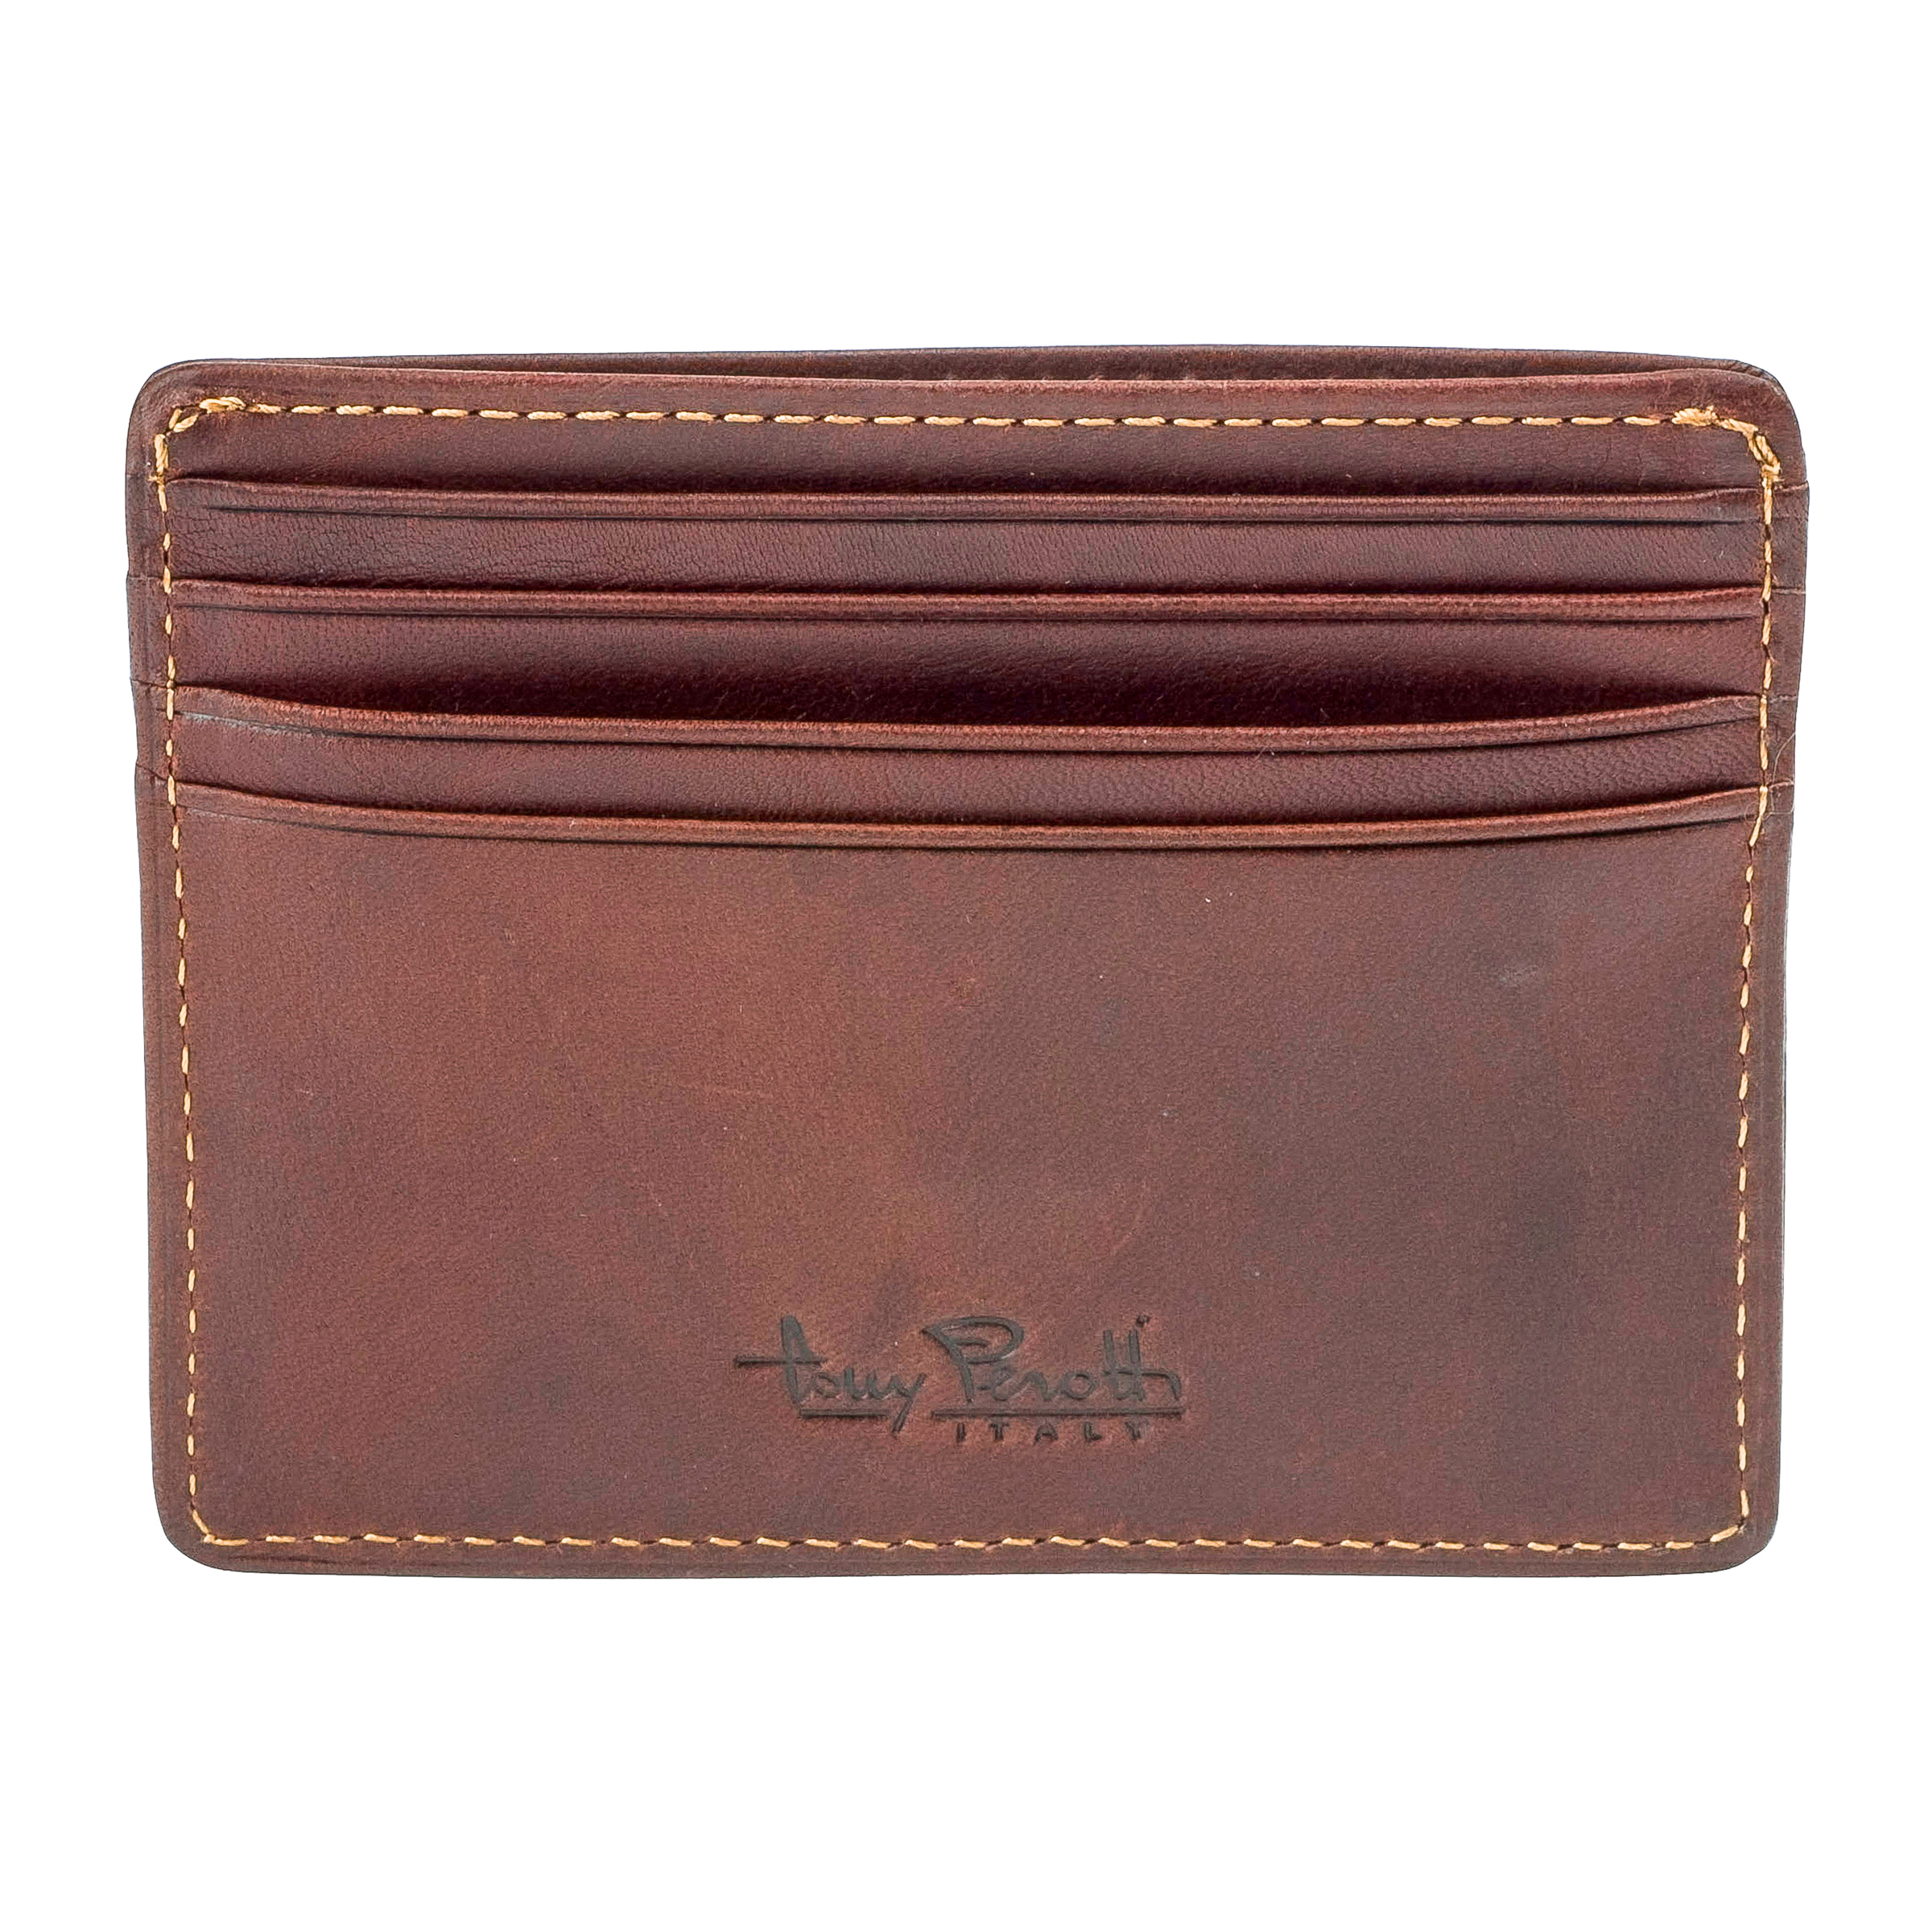 Tony Perotti Creditcard wallet With Small Pocket for notes Brown